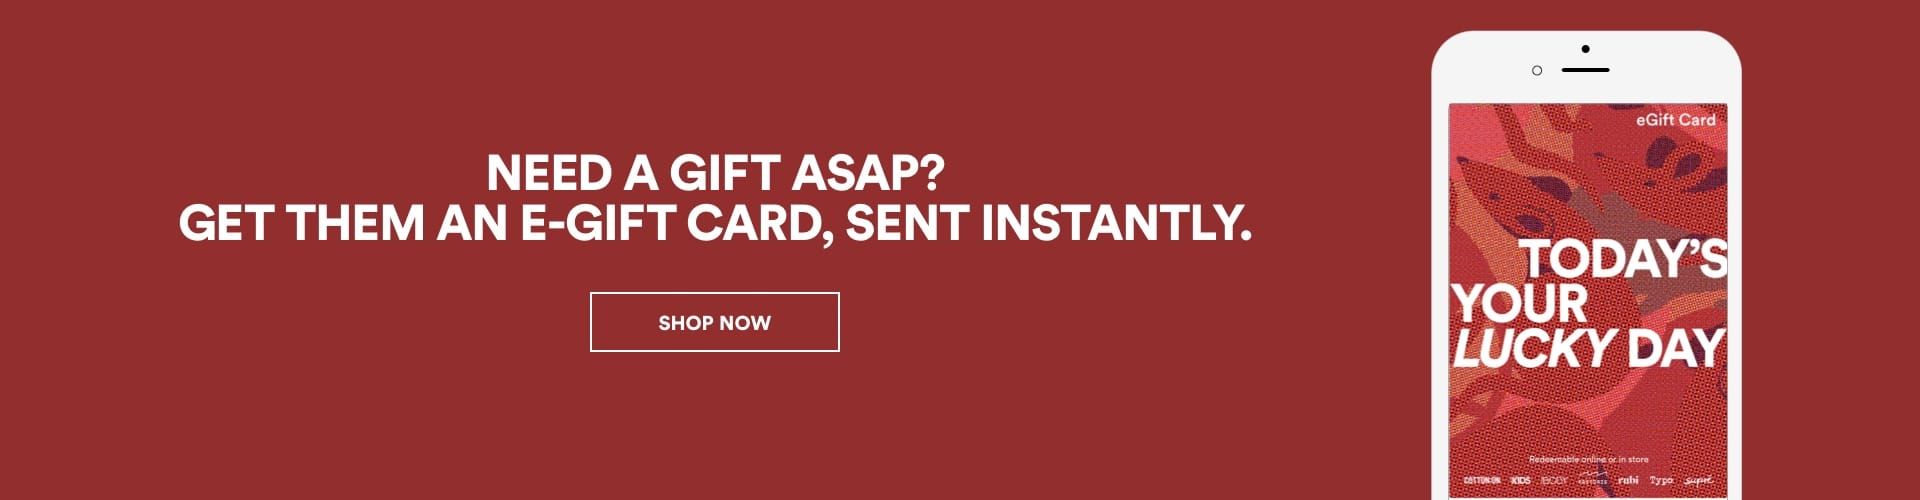 Need a Gift ASAP? Get Them An E-Gift Card. Shop Now